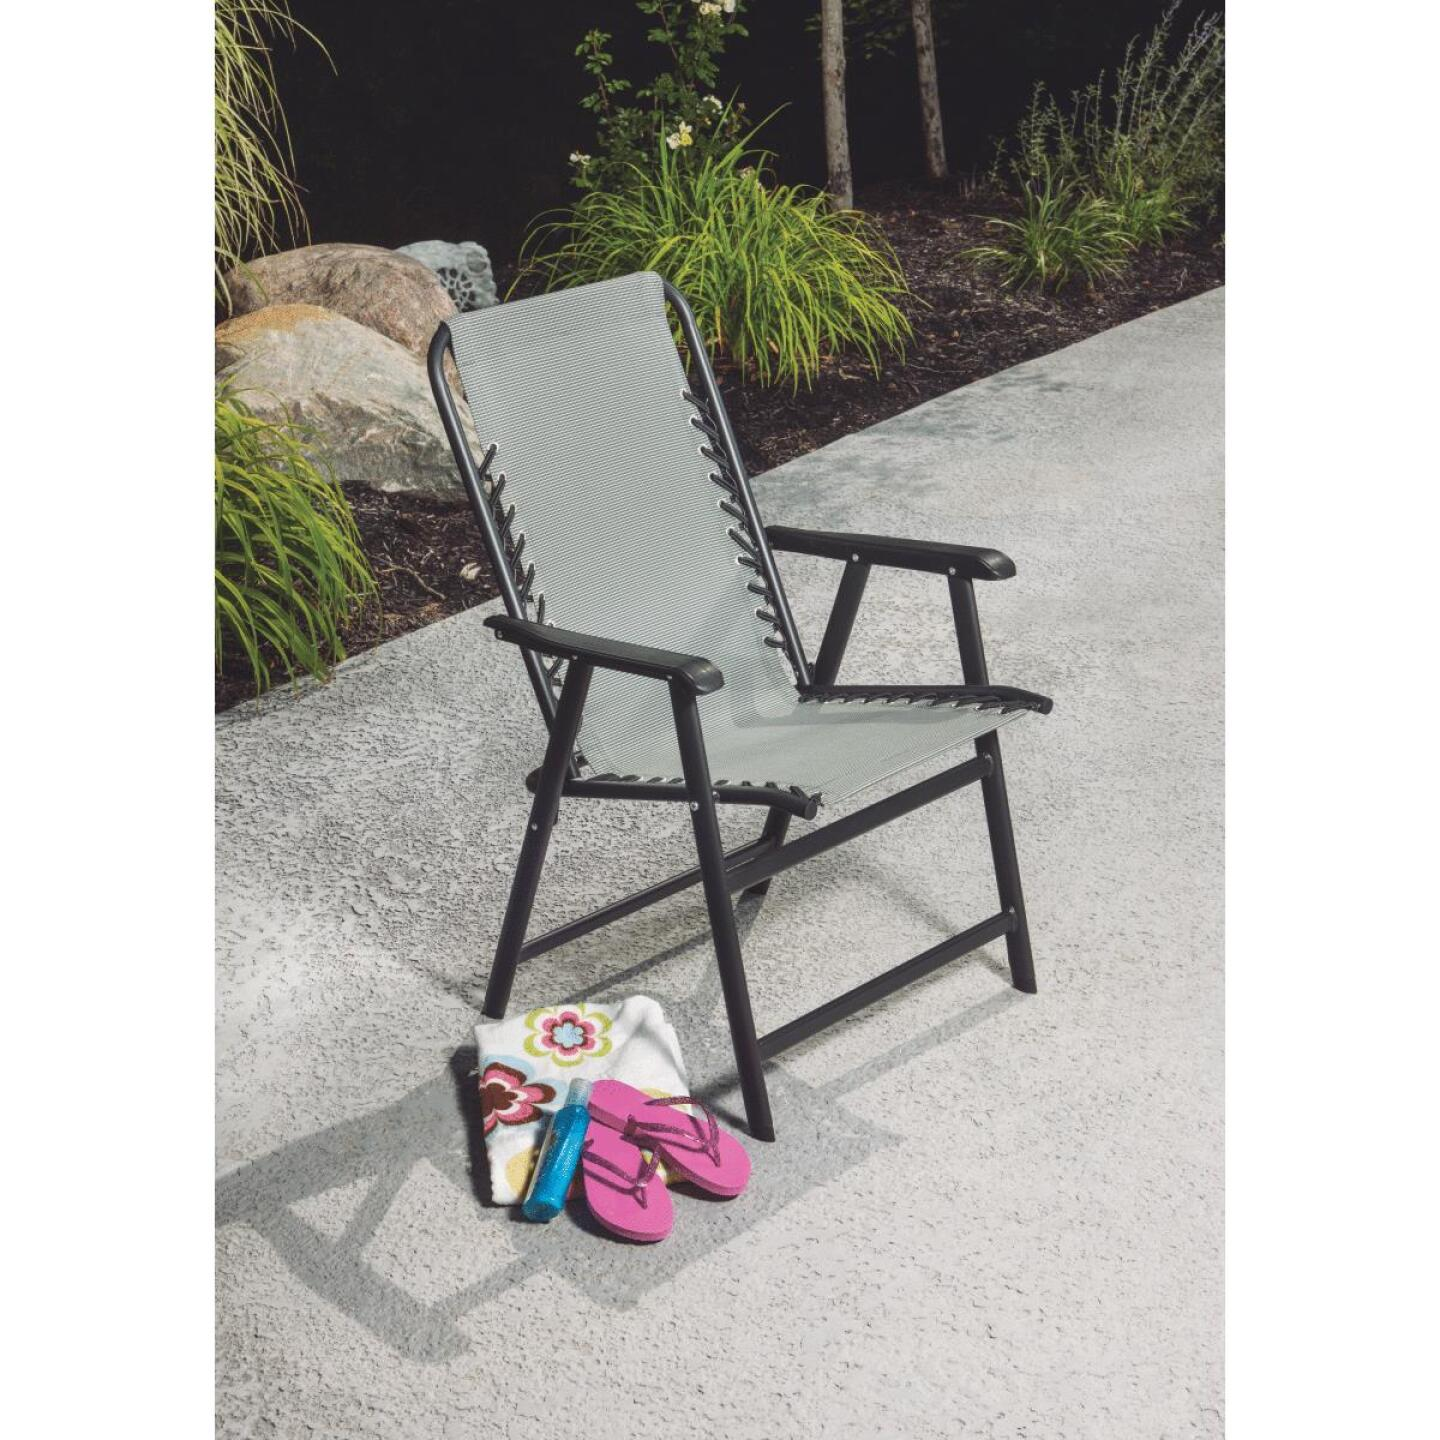 Outdoor Expressions Seville Gray Sling Folding Chair Image 3